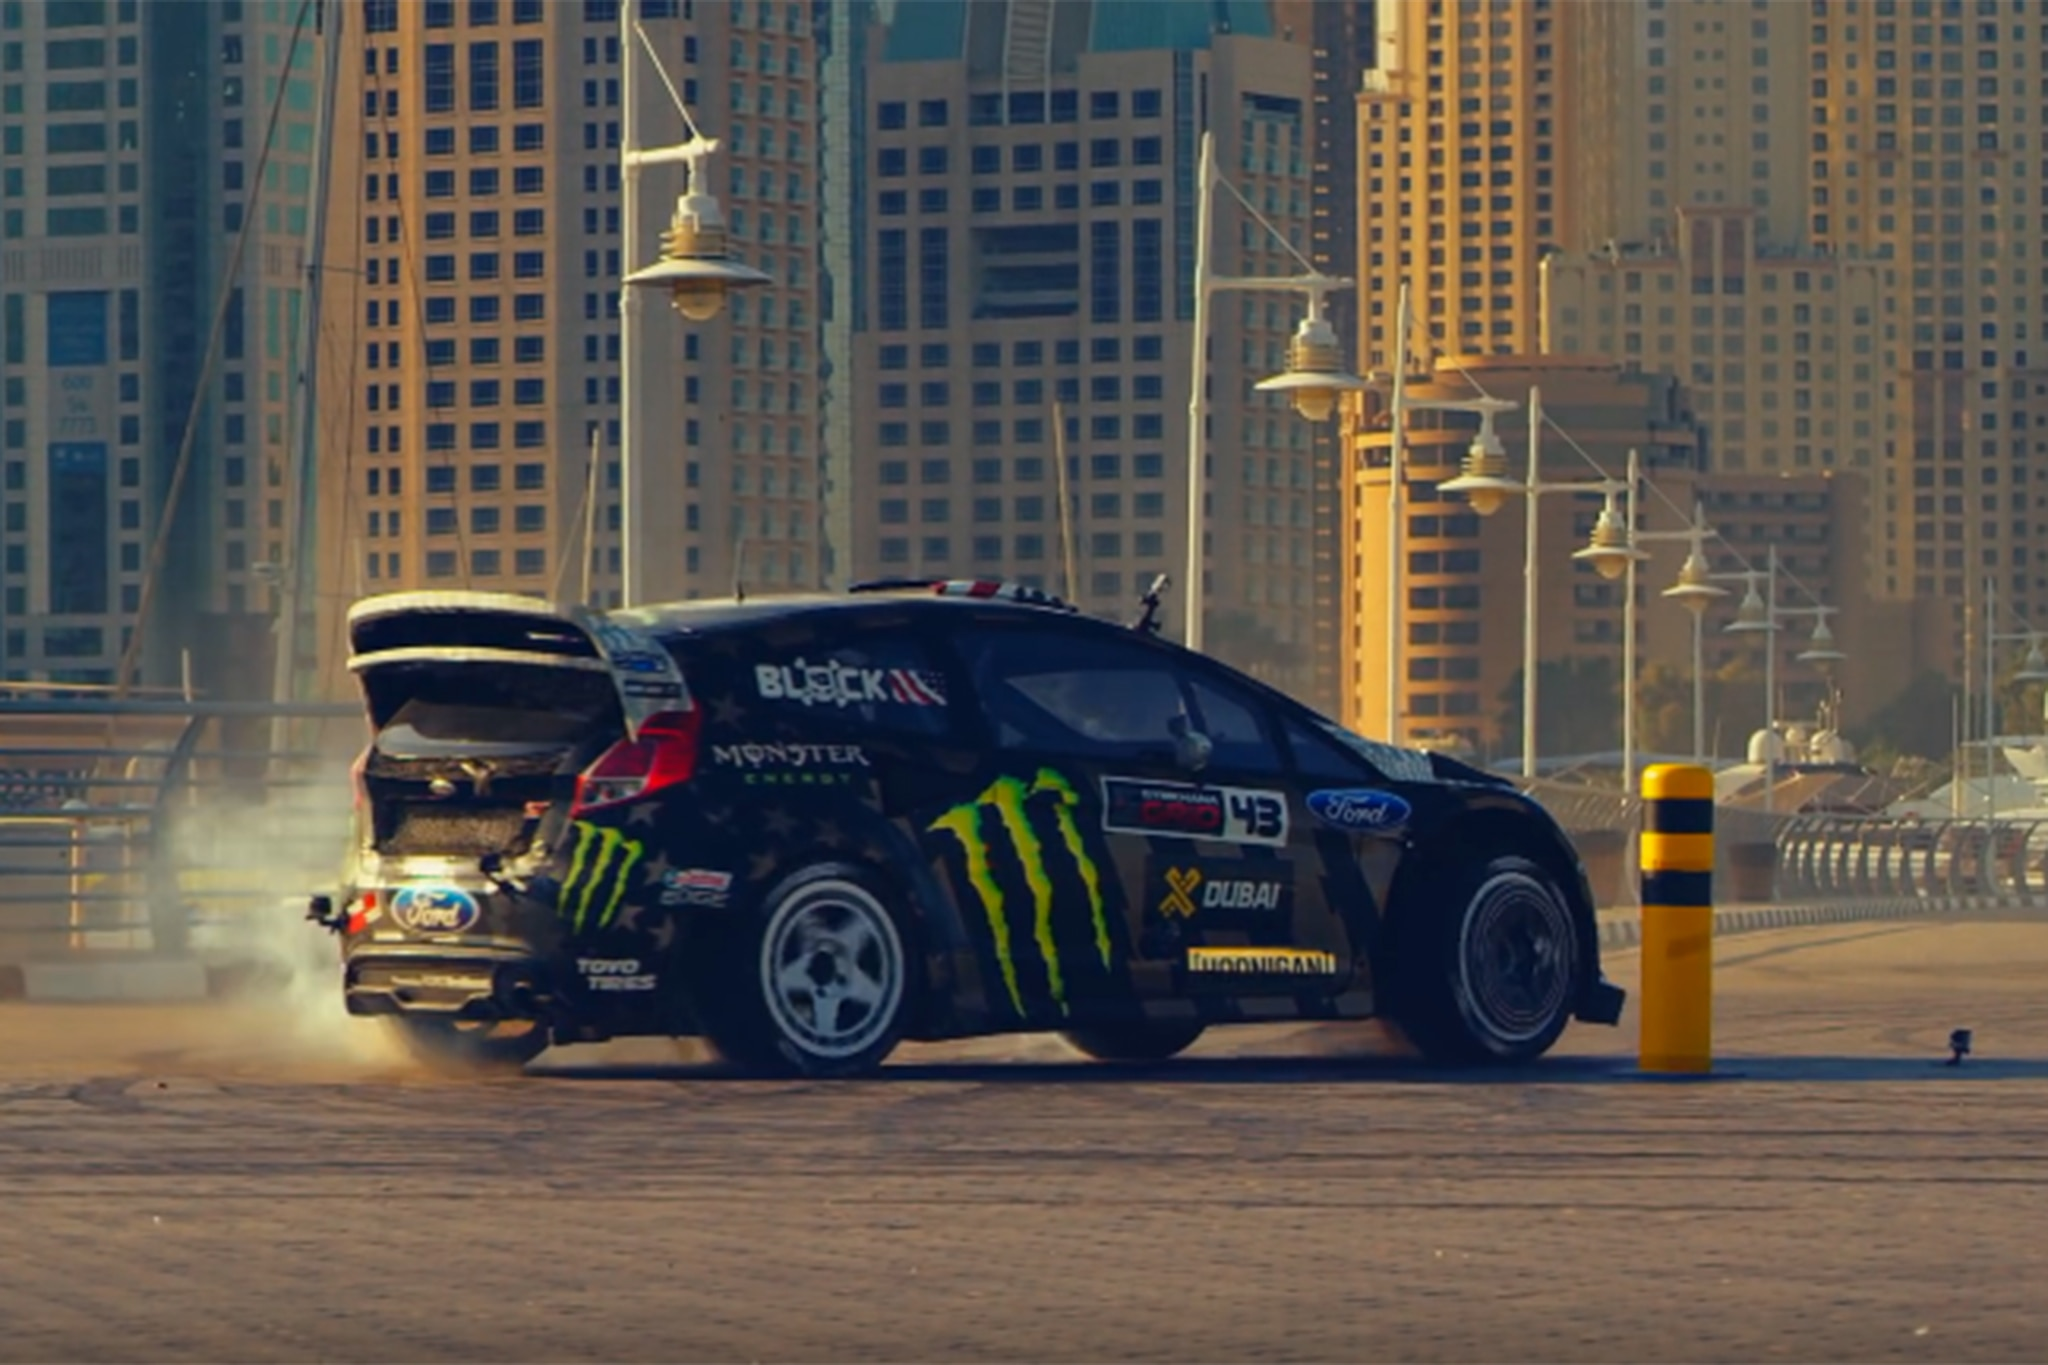 Ken Block S Gymkhana Series Keeps On Ripping